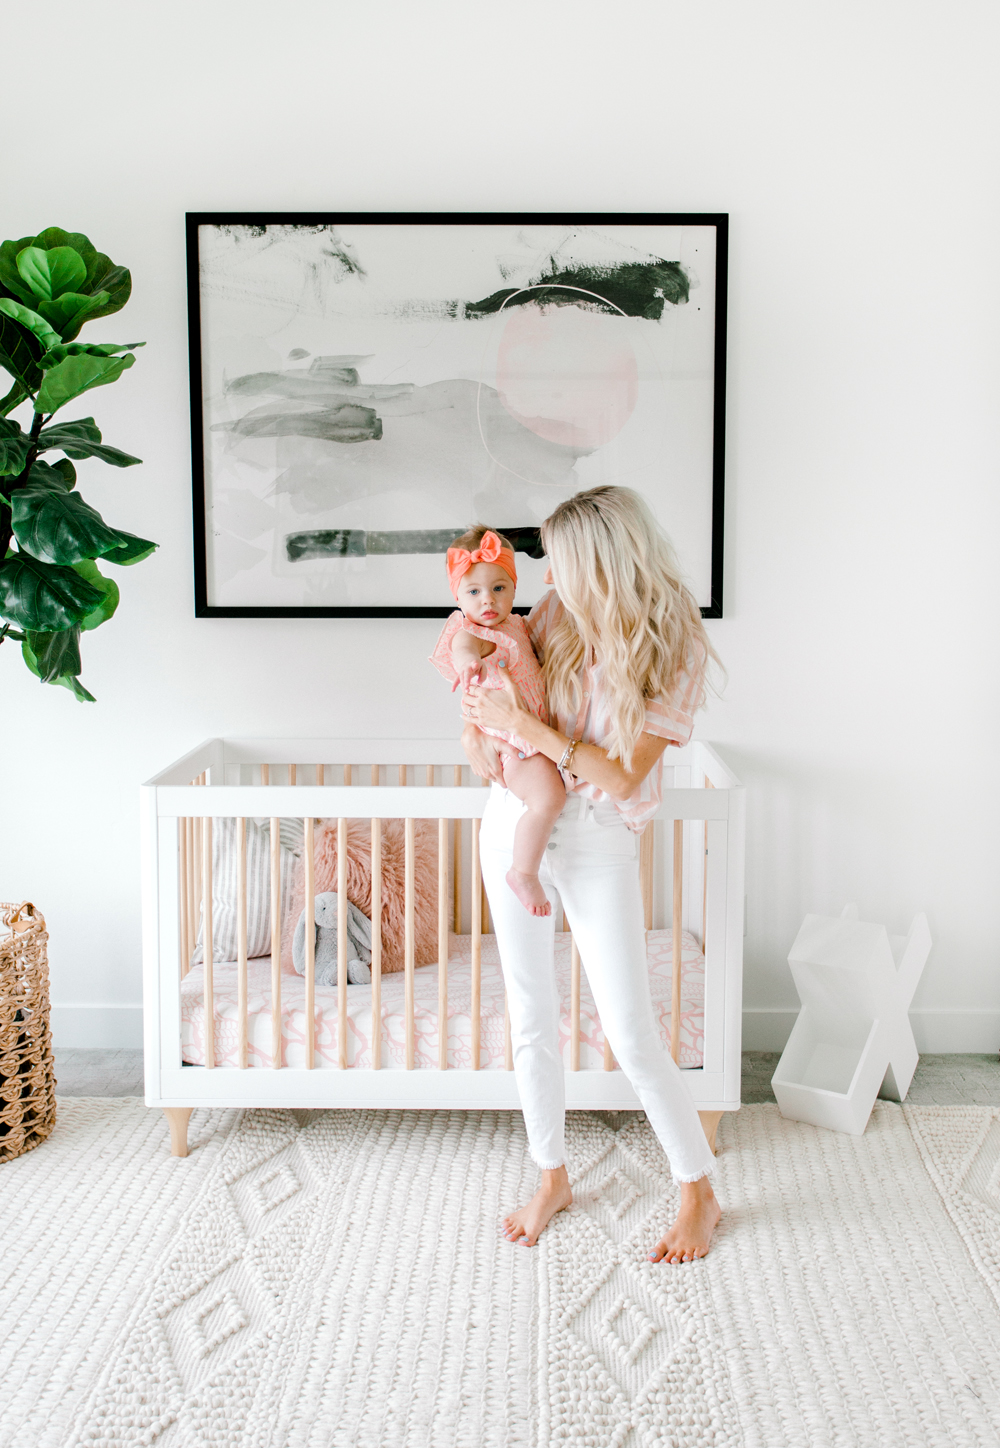 Kailee Wright Harper Room nursery